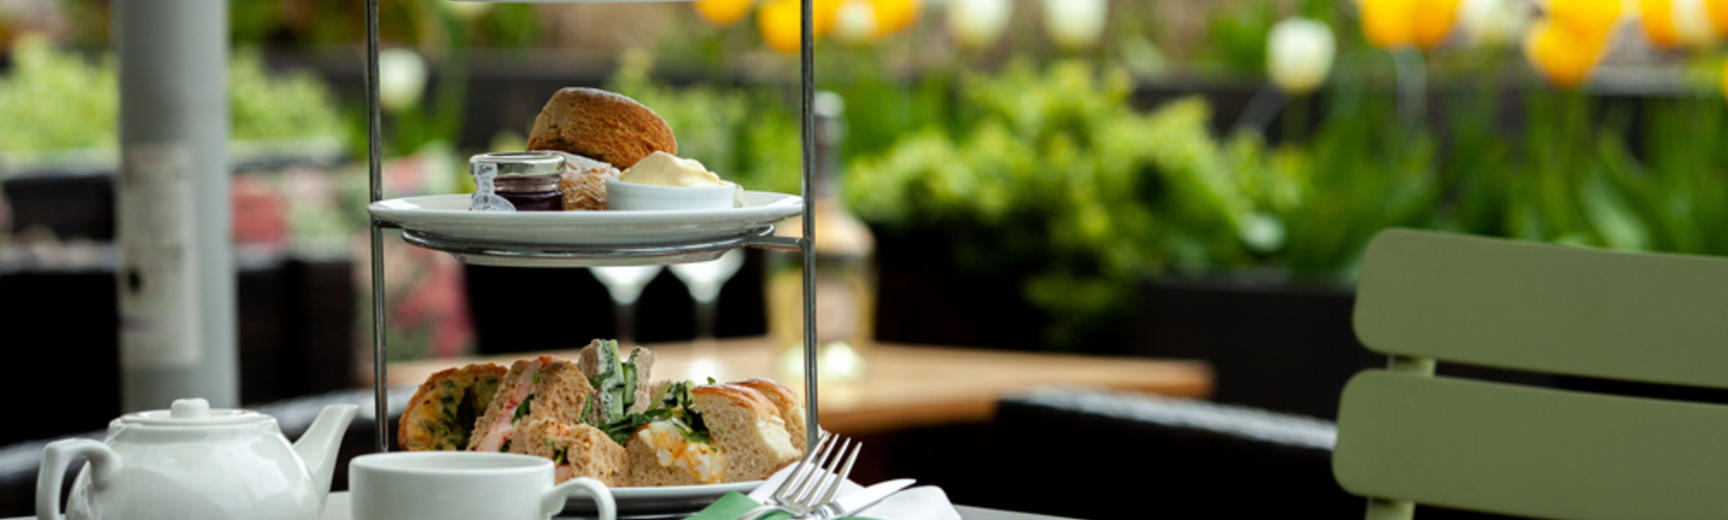 A tower of cakes, sandwiches and scones alongside teacup and teapot